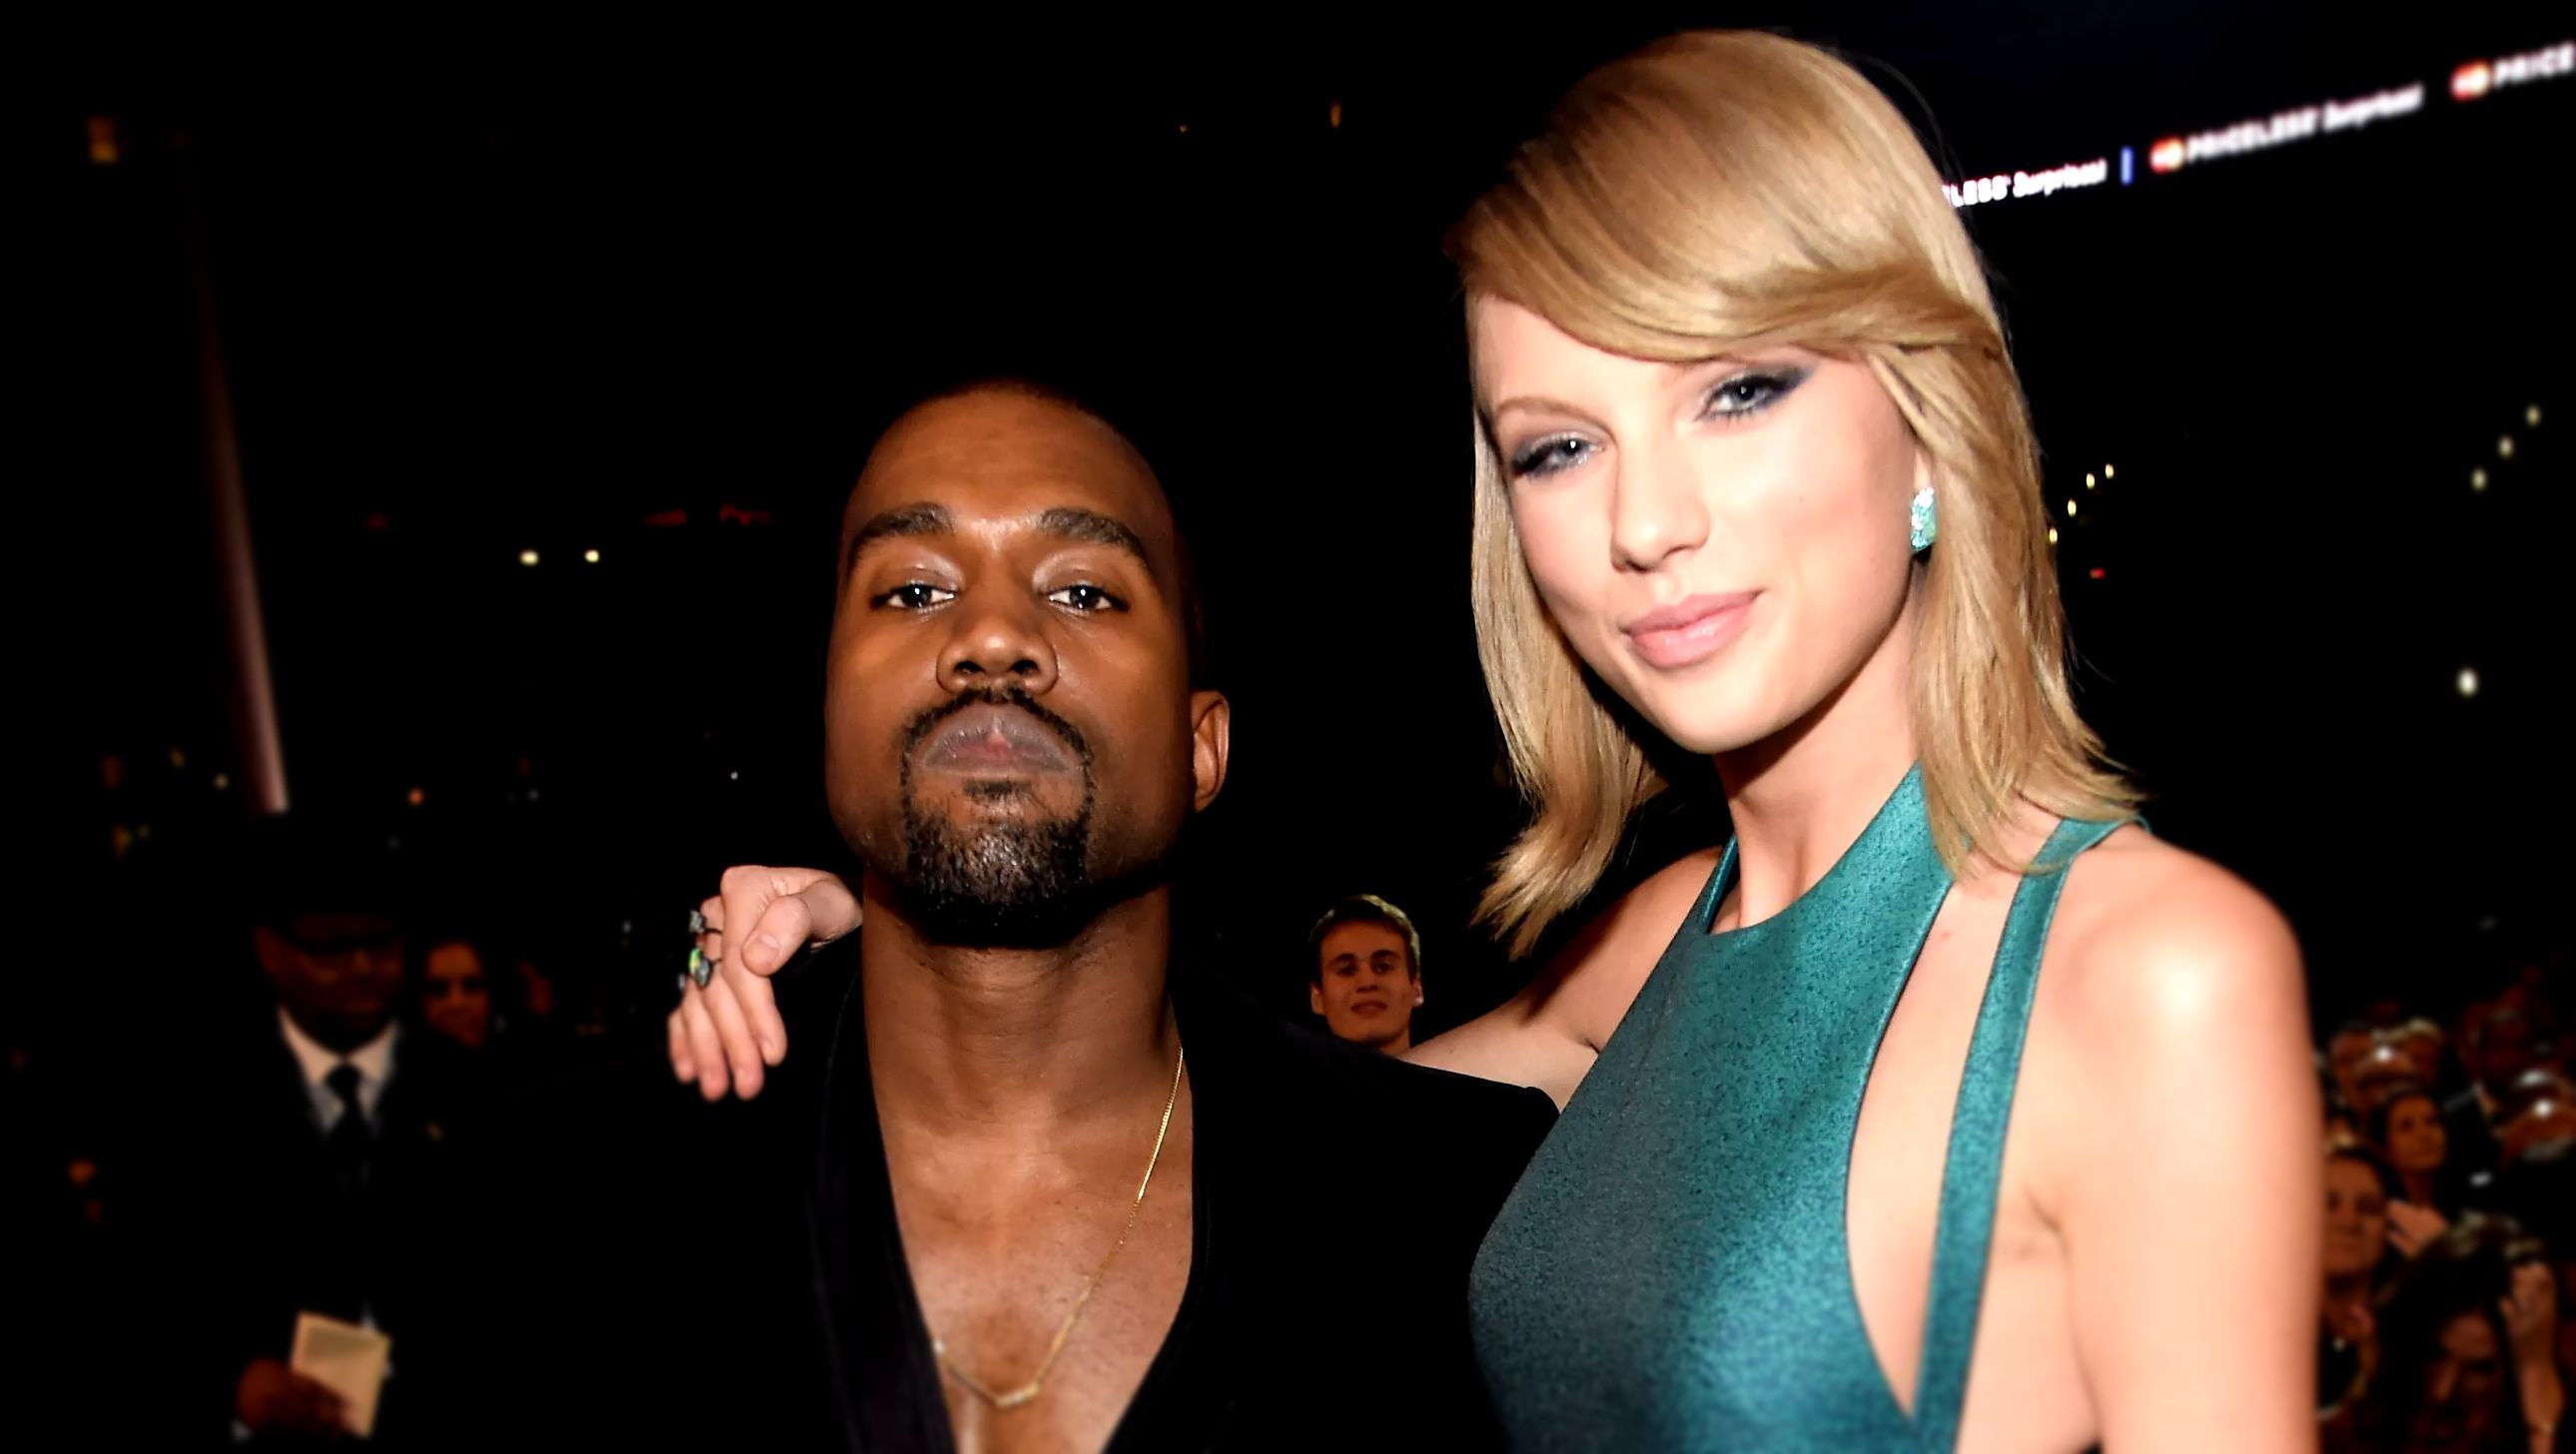 Kanye West & Taylor Swift at the 2015 GRAMMY Awards